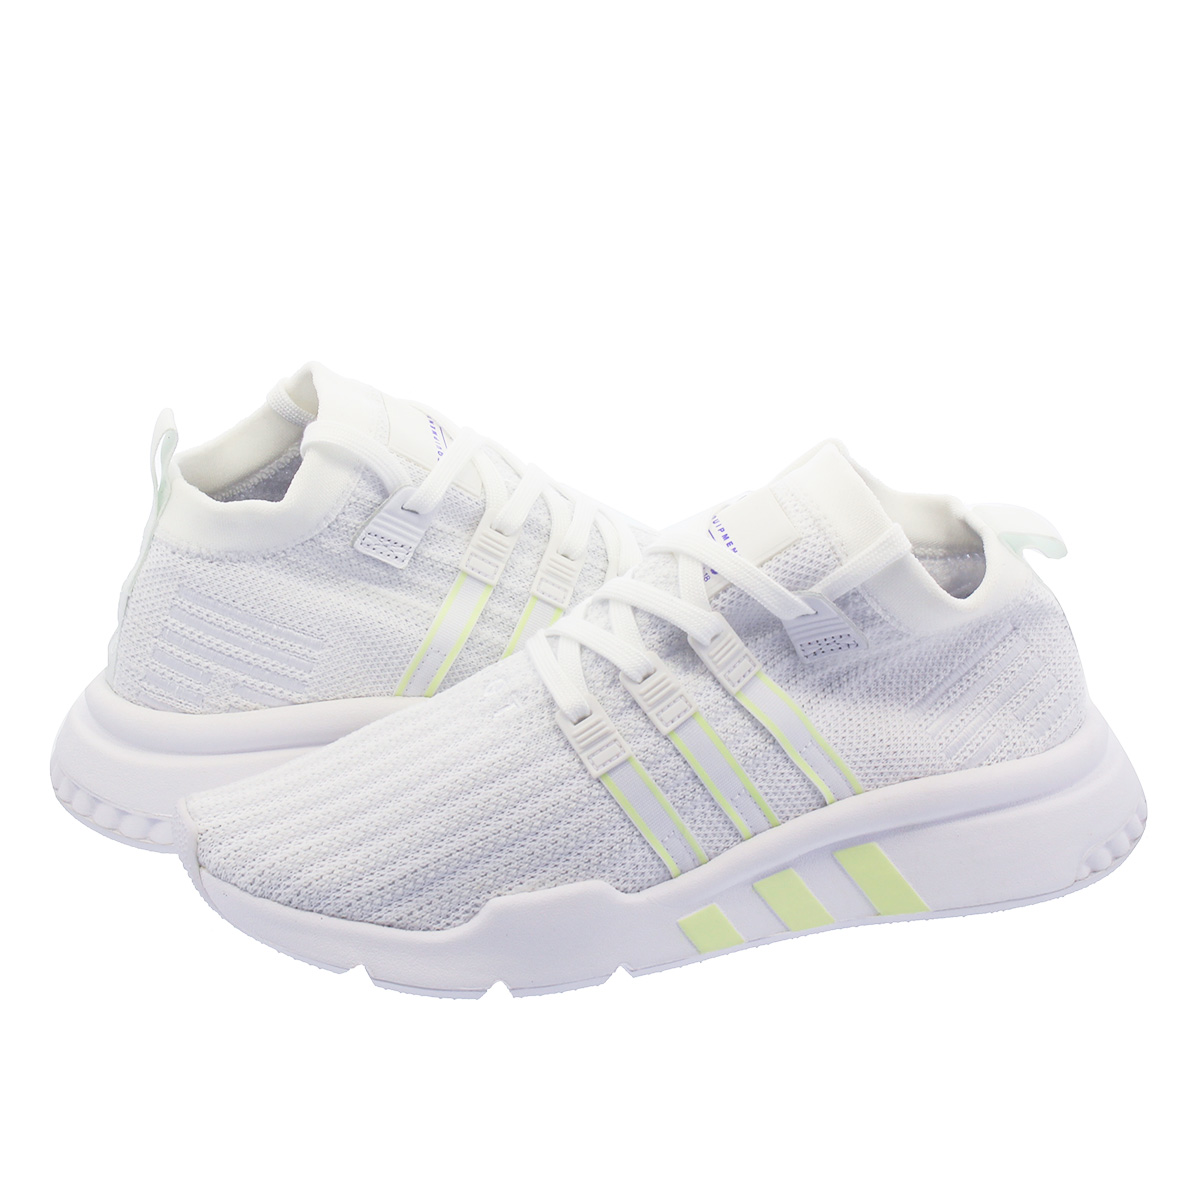 new arrival 9e899 80589 adidas EQT SUPPORT MID ADV PK Adidas EQT support mid ADV PK RUNNING  WHITE/CRYSTAL WHITE/ENERGY INK b37455